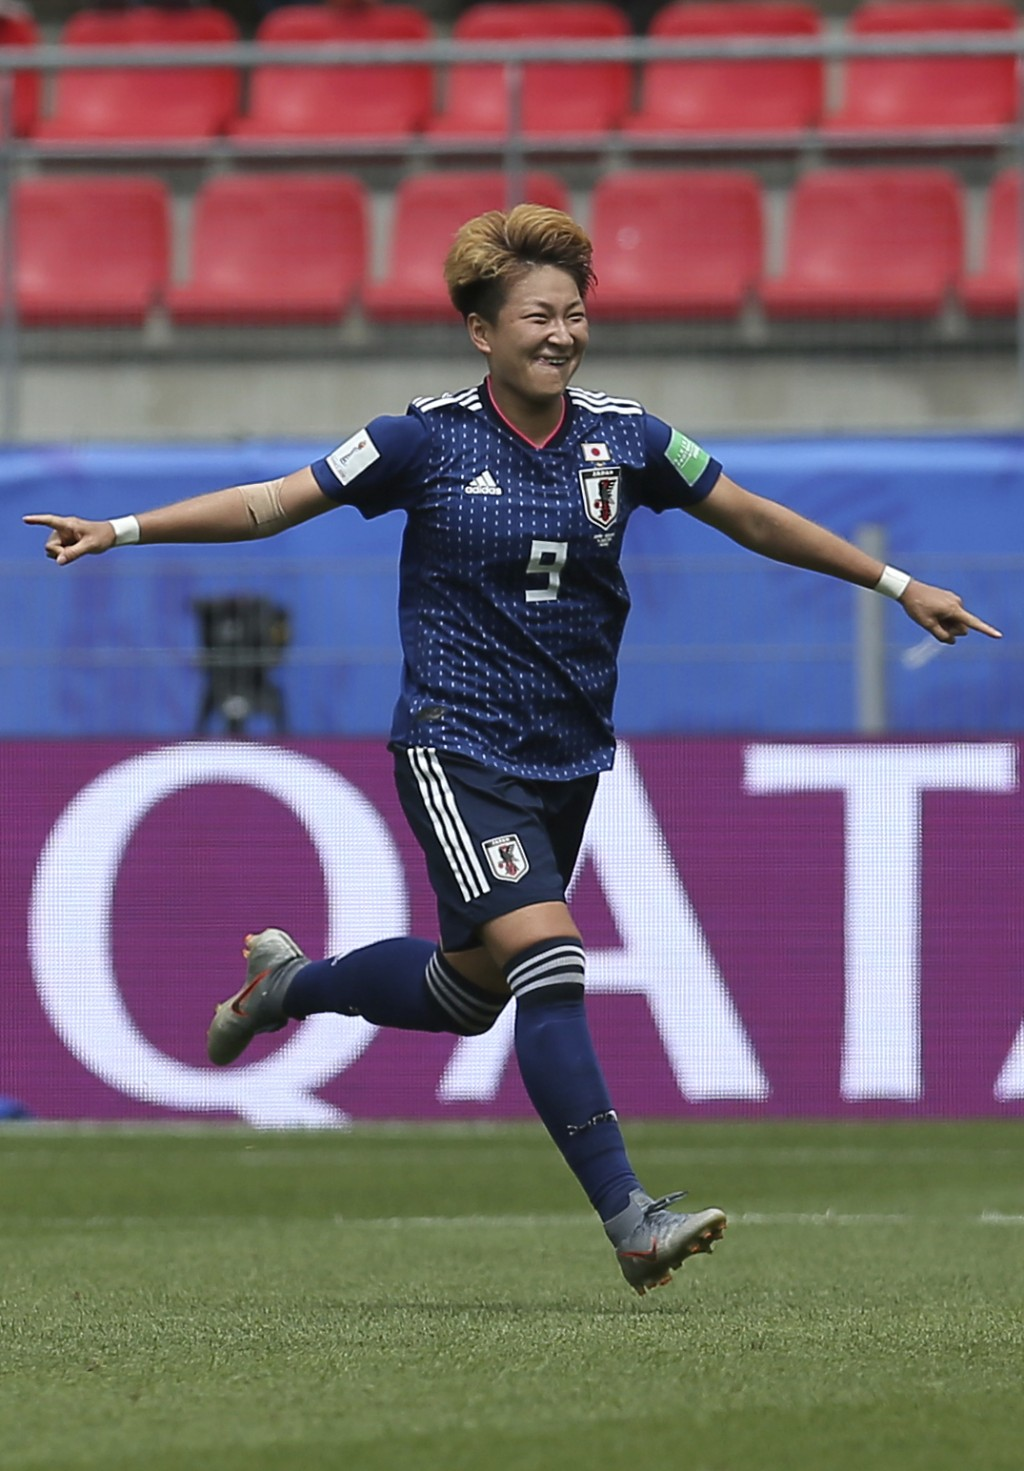 Japan's Yuika Sugasawa jubilates after scoring the matches second goal, on a penalty, during the Women's World Cup Group D soccer match between Japan